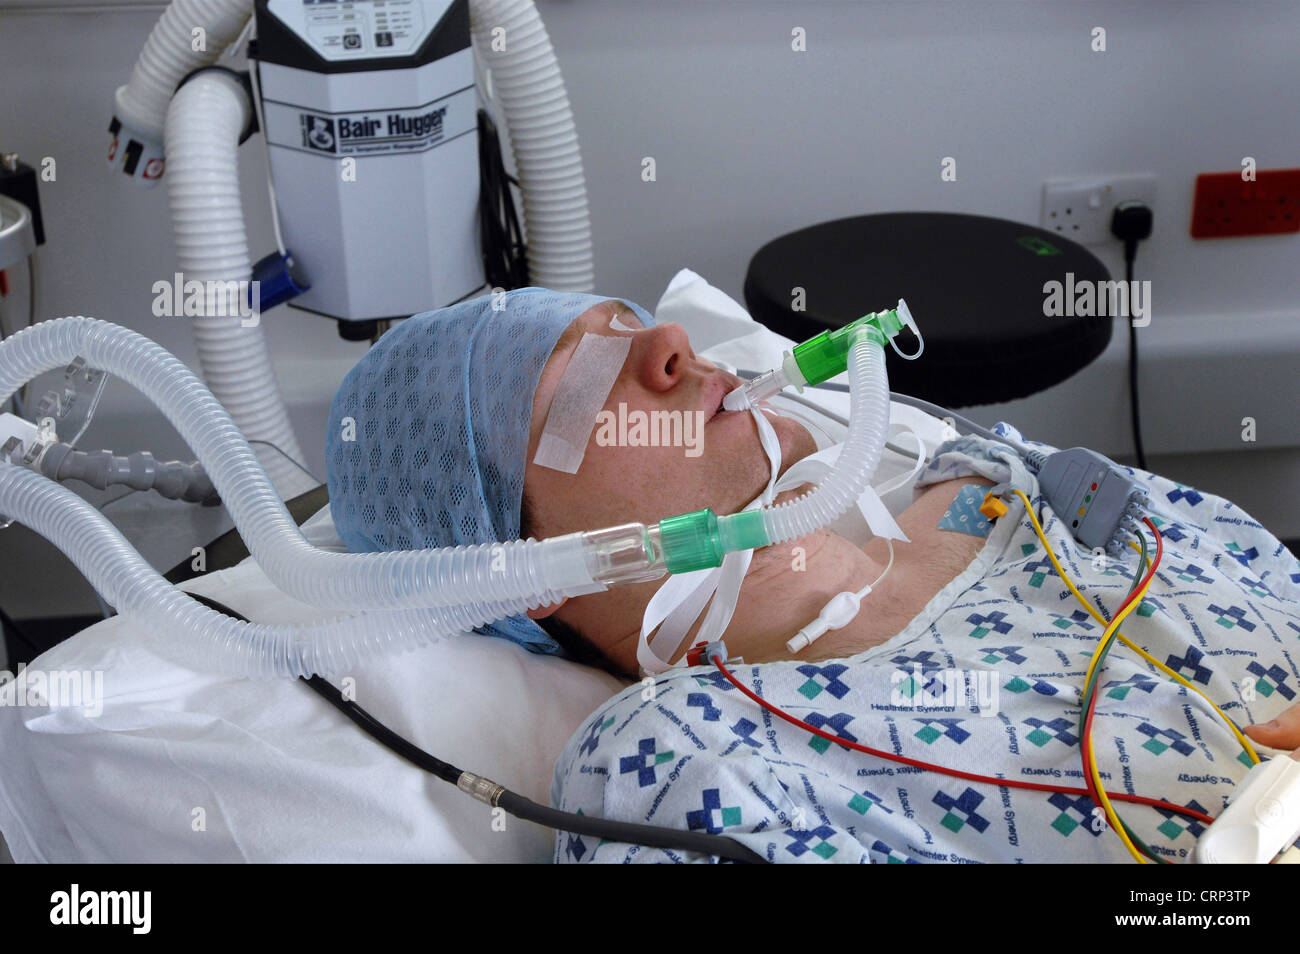 An anesthetized patient before undergoing surgery. - Stock Image